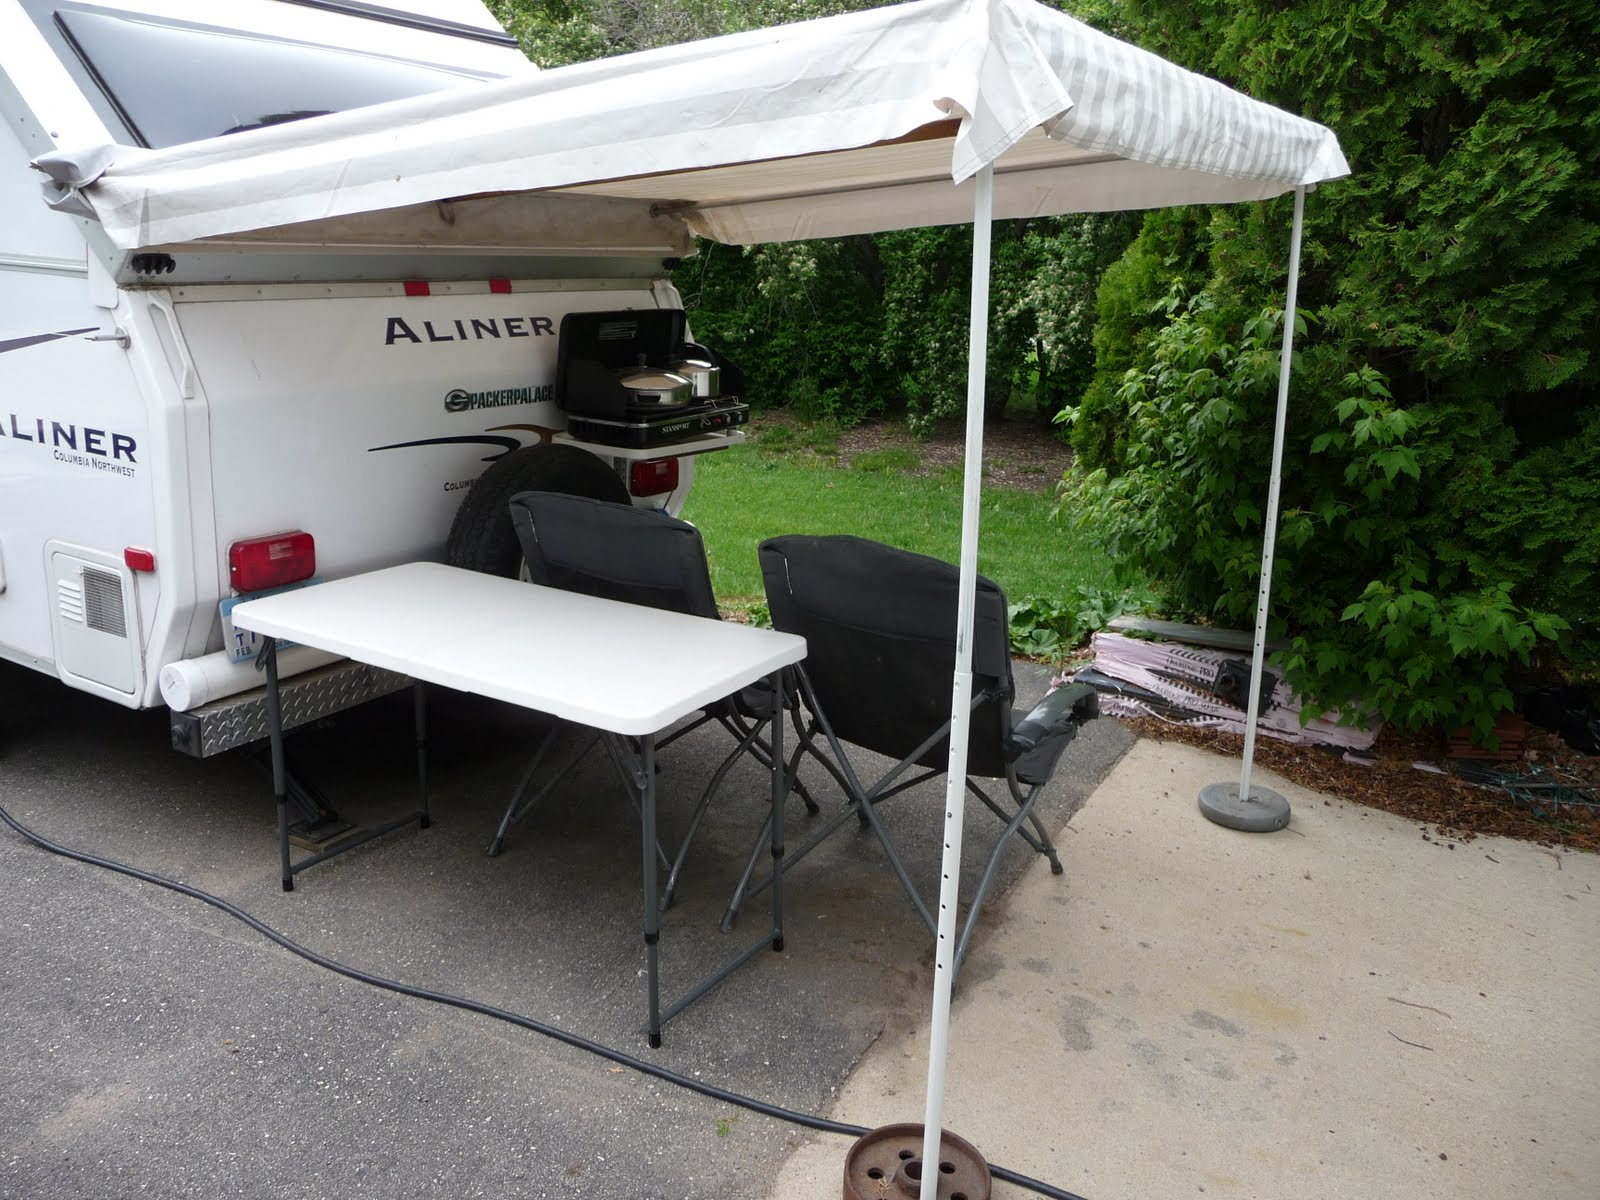 Awnings Ideas Dave Theoleguy And Nancys Aliner Plug Setup 2008 Camper Wiring Ez Extra Height From High Wall Is Important